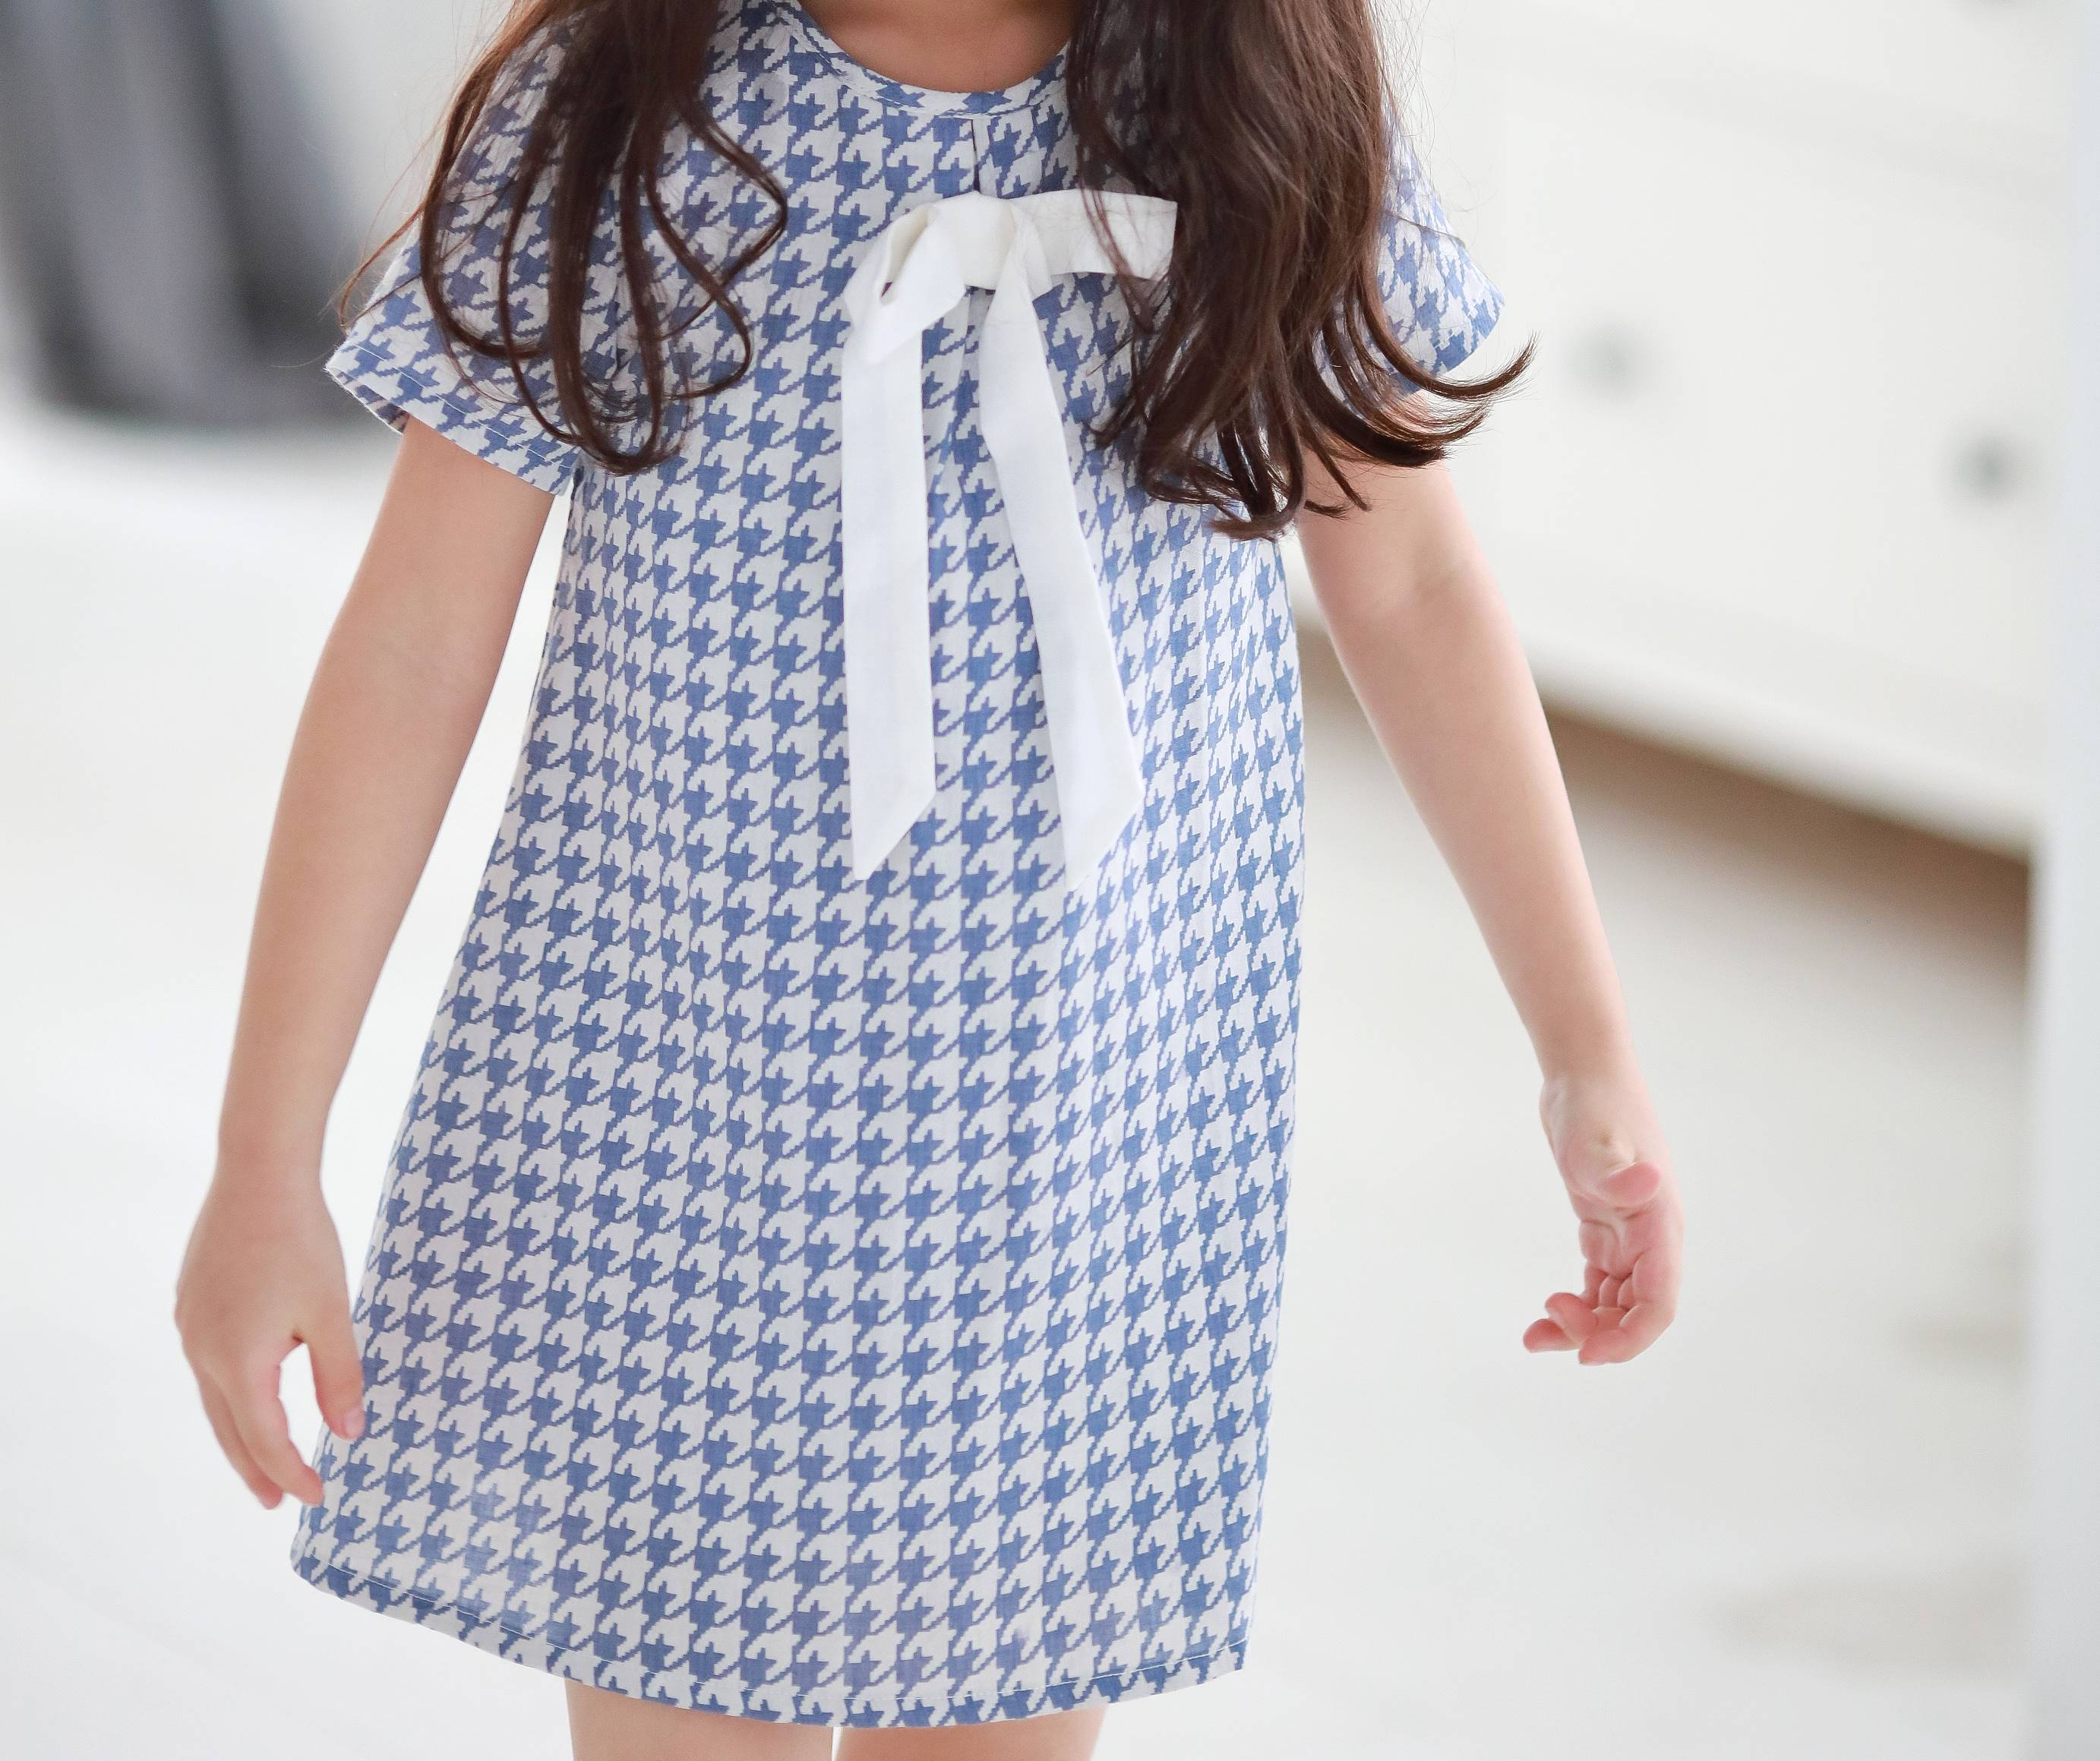 Houndstooth with cute bow dress - Bunny n Bloom Mommy & Me Dress